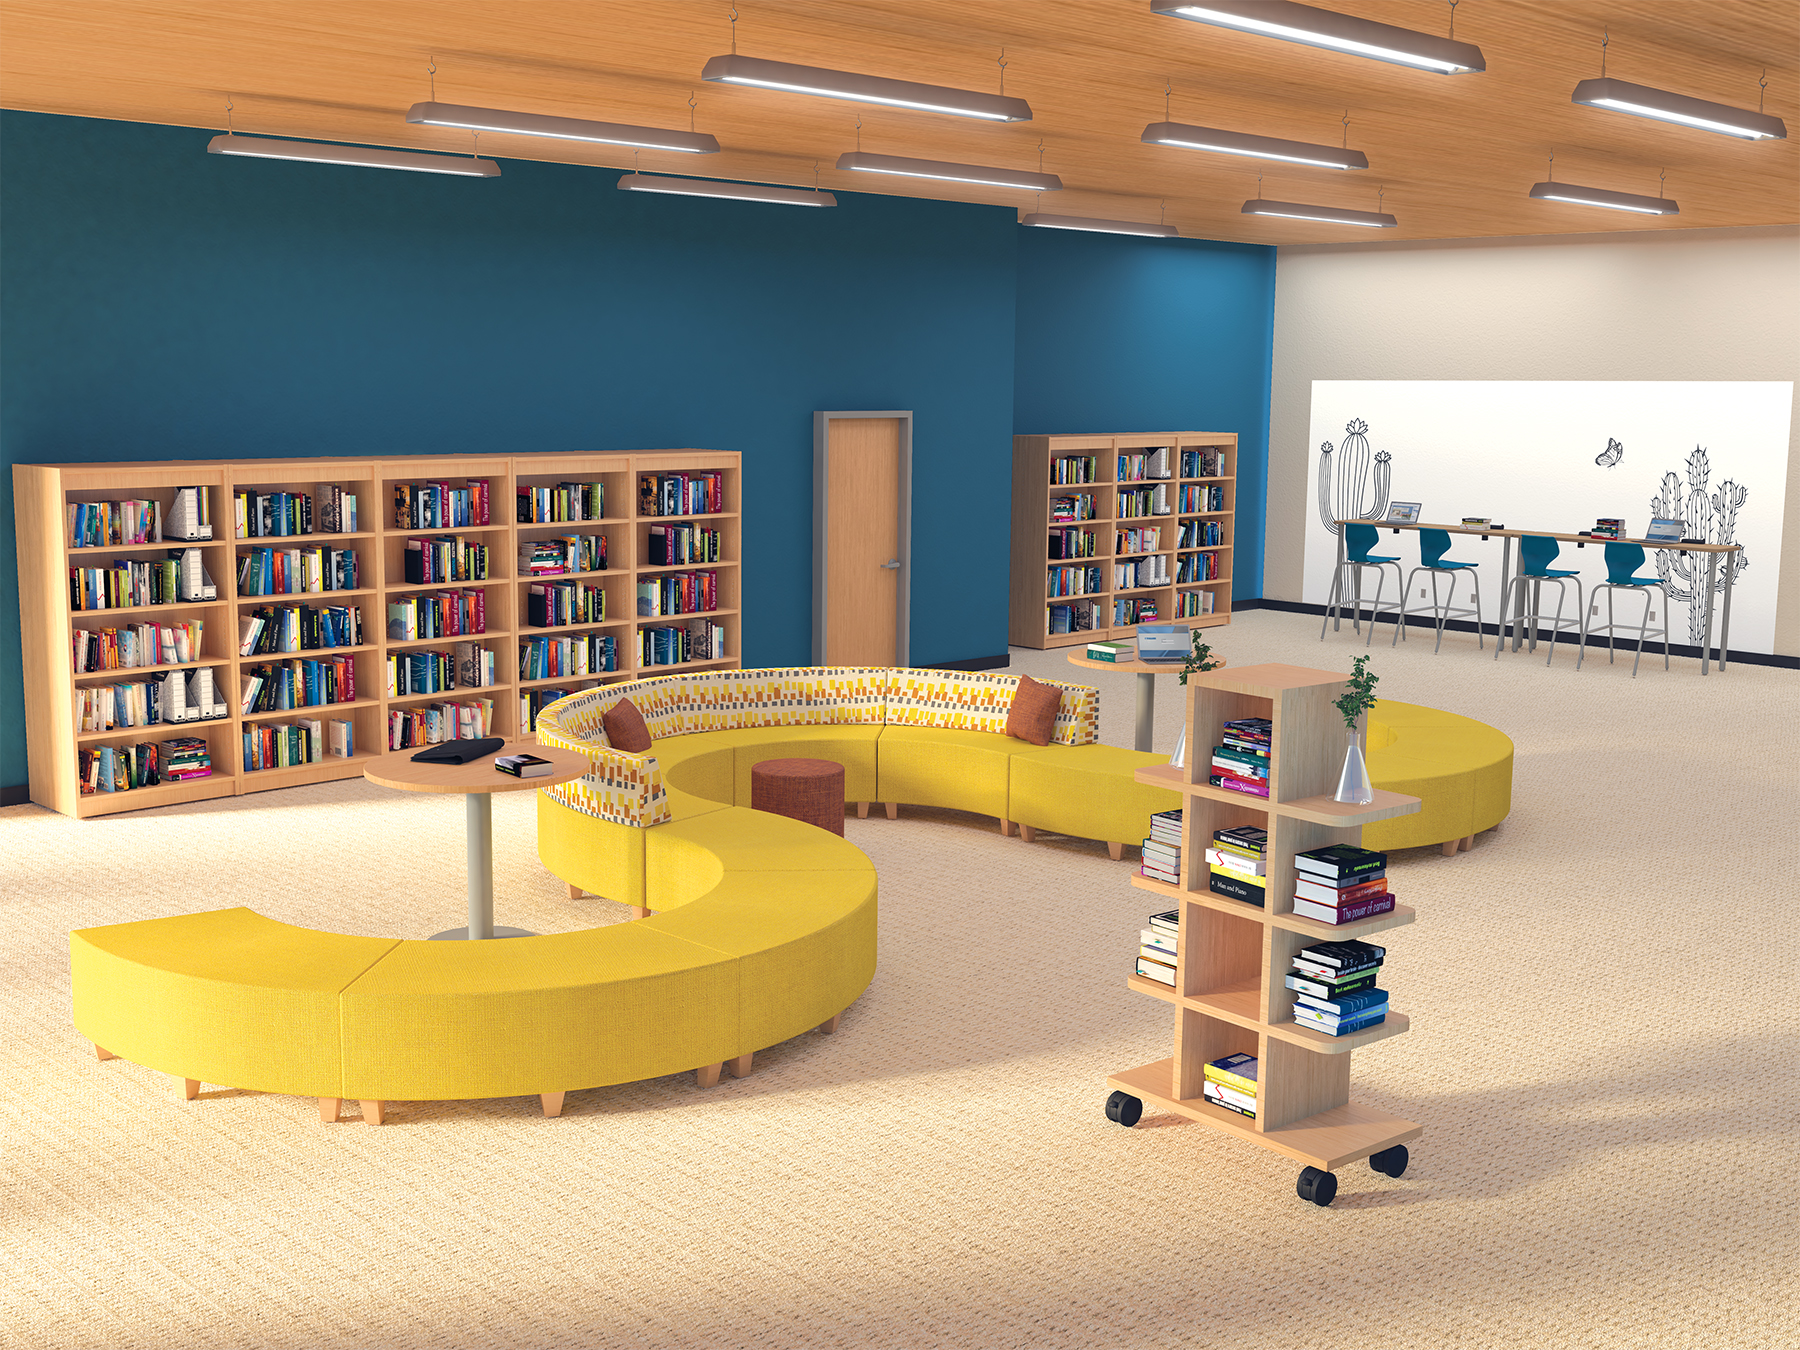 Vanerum Library Part 2